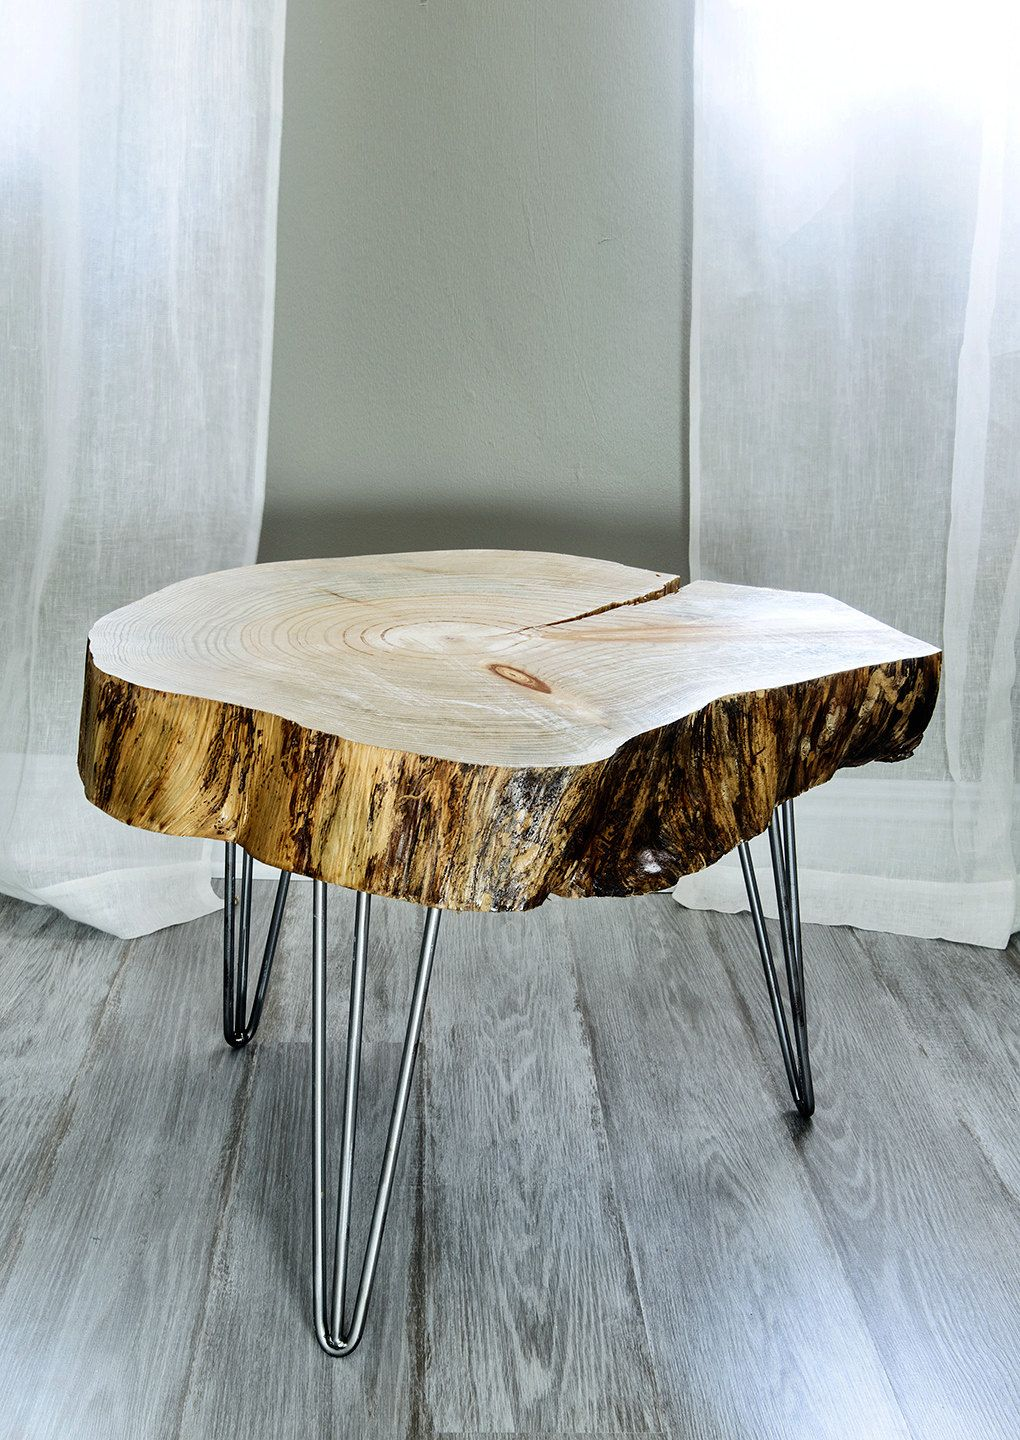 Anderson Pine Couchtisch Reclaimed Canary Island Pine Tree Slice Table By Craftsmanhattan